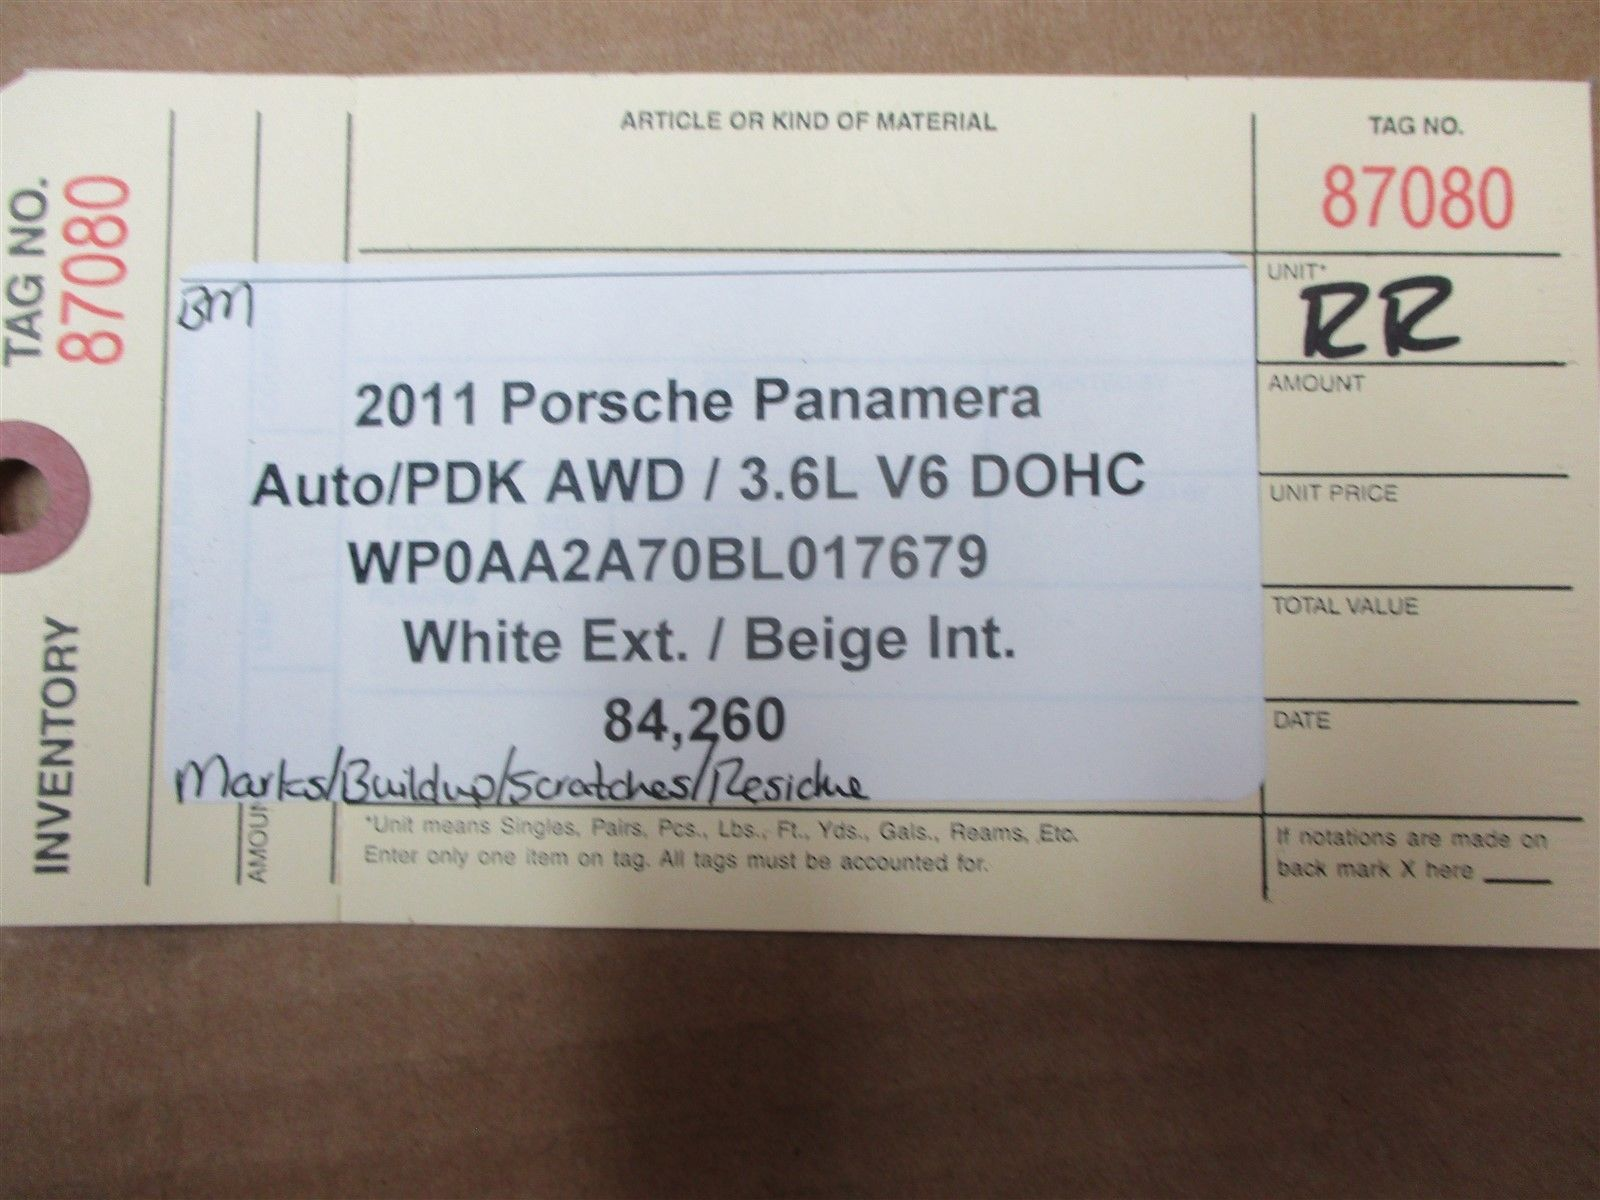 11 Panamera AWD 970 Porsche R REAR QUARTER WINDOW 970544312 PASSENGER 84,260